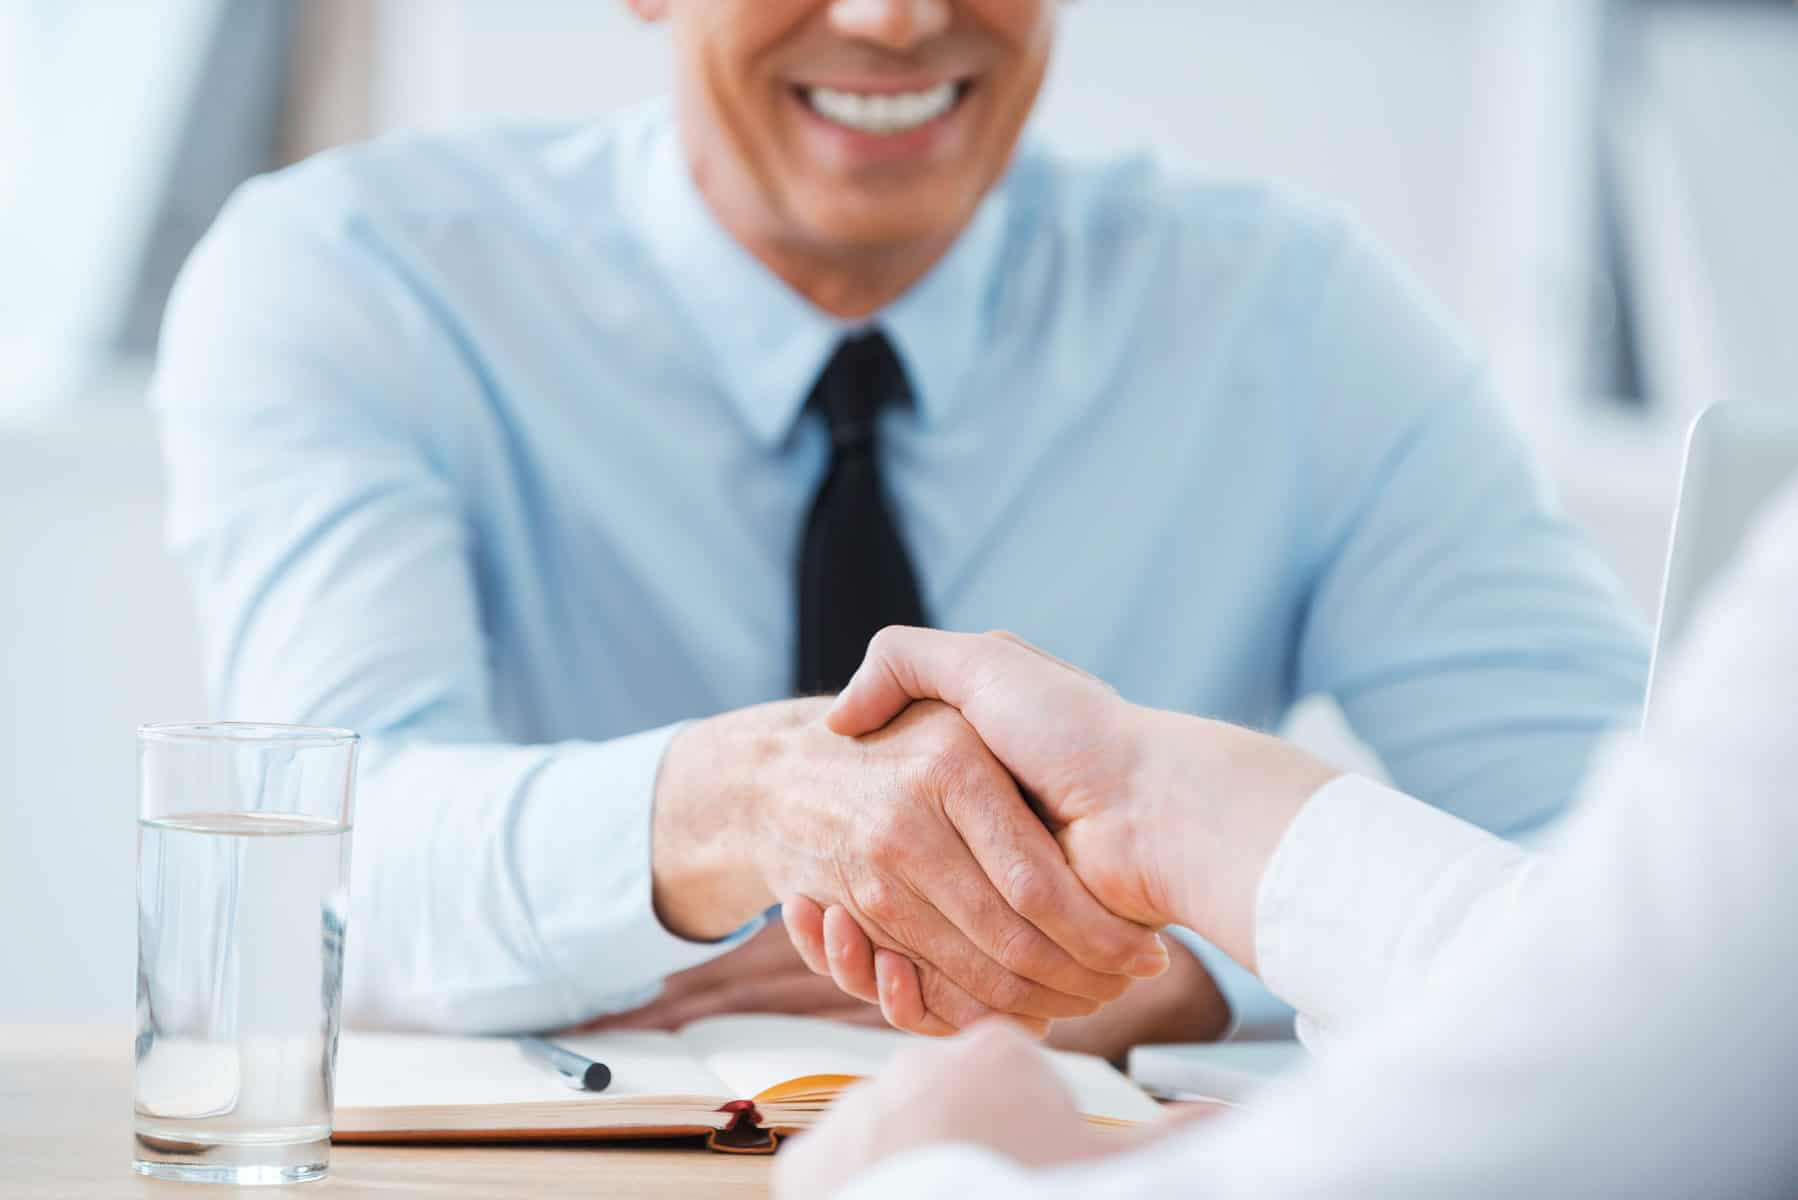 Man in business shirt and tie shaking a hand across a table